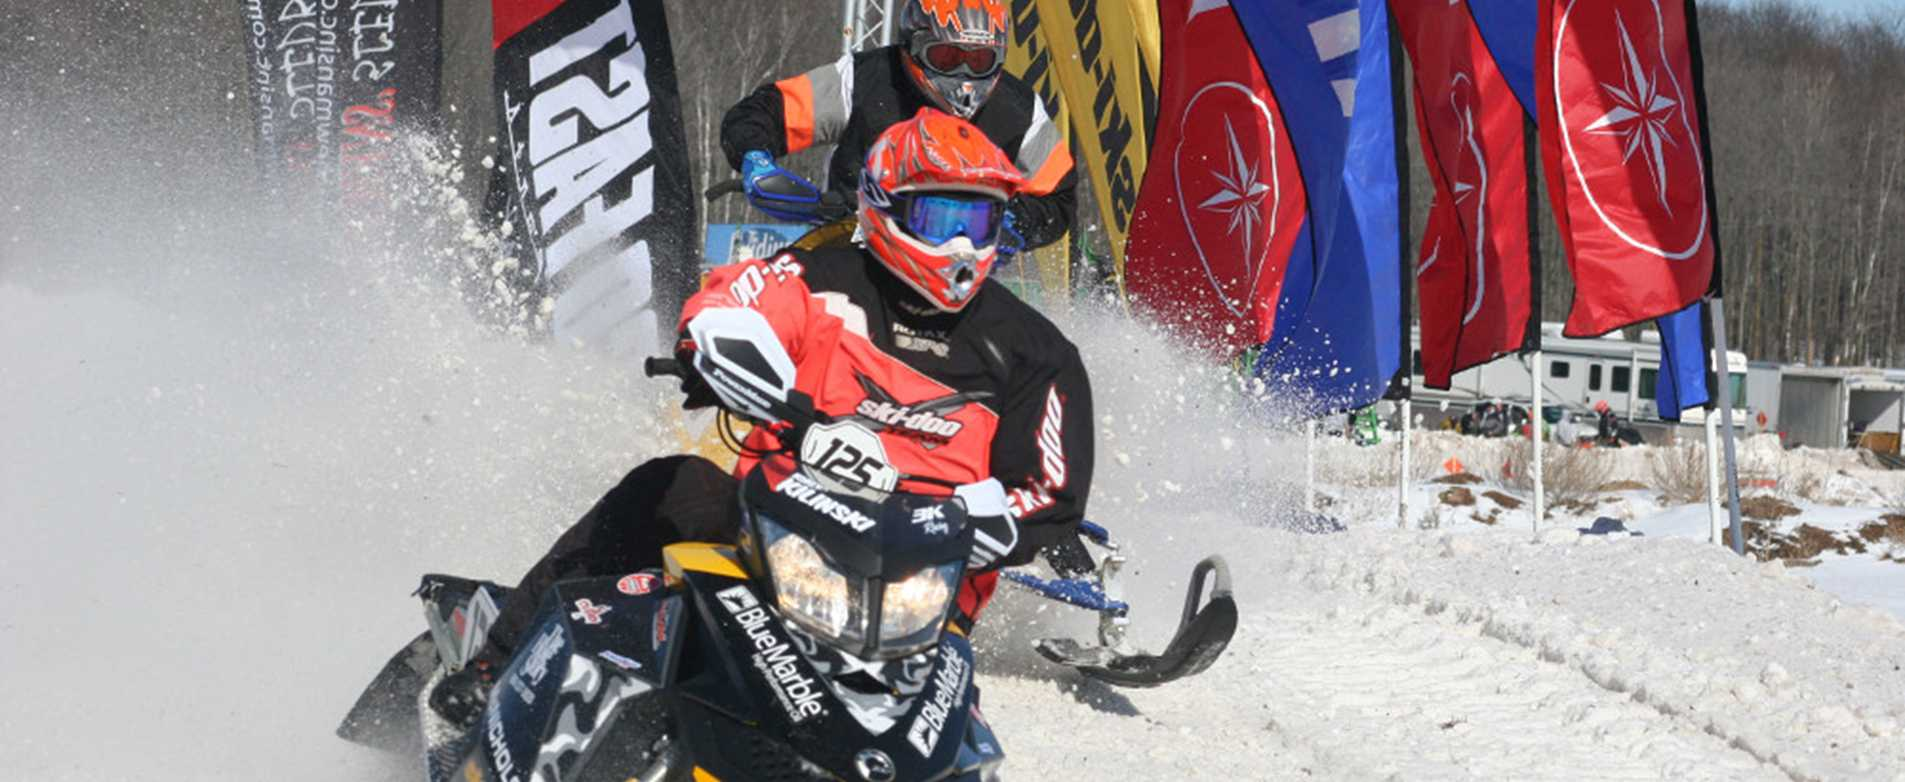 Hayward 300 Snocross Snowmobile Race